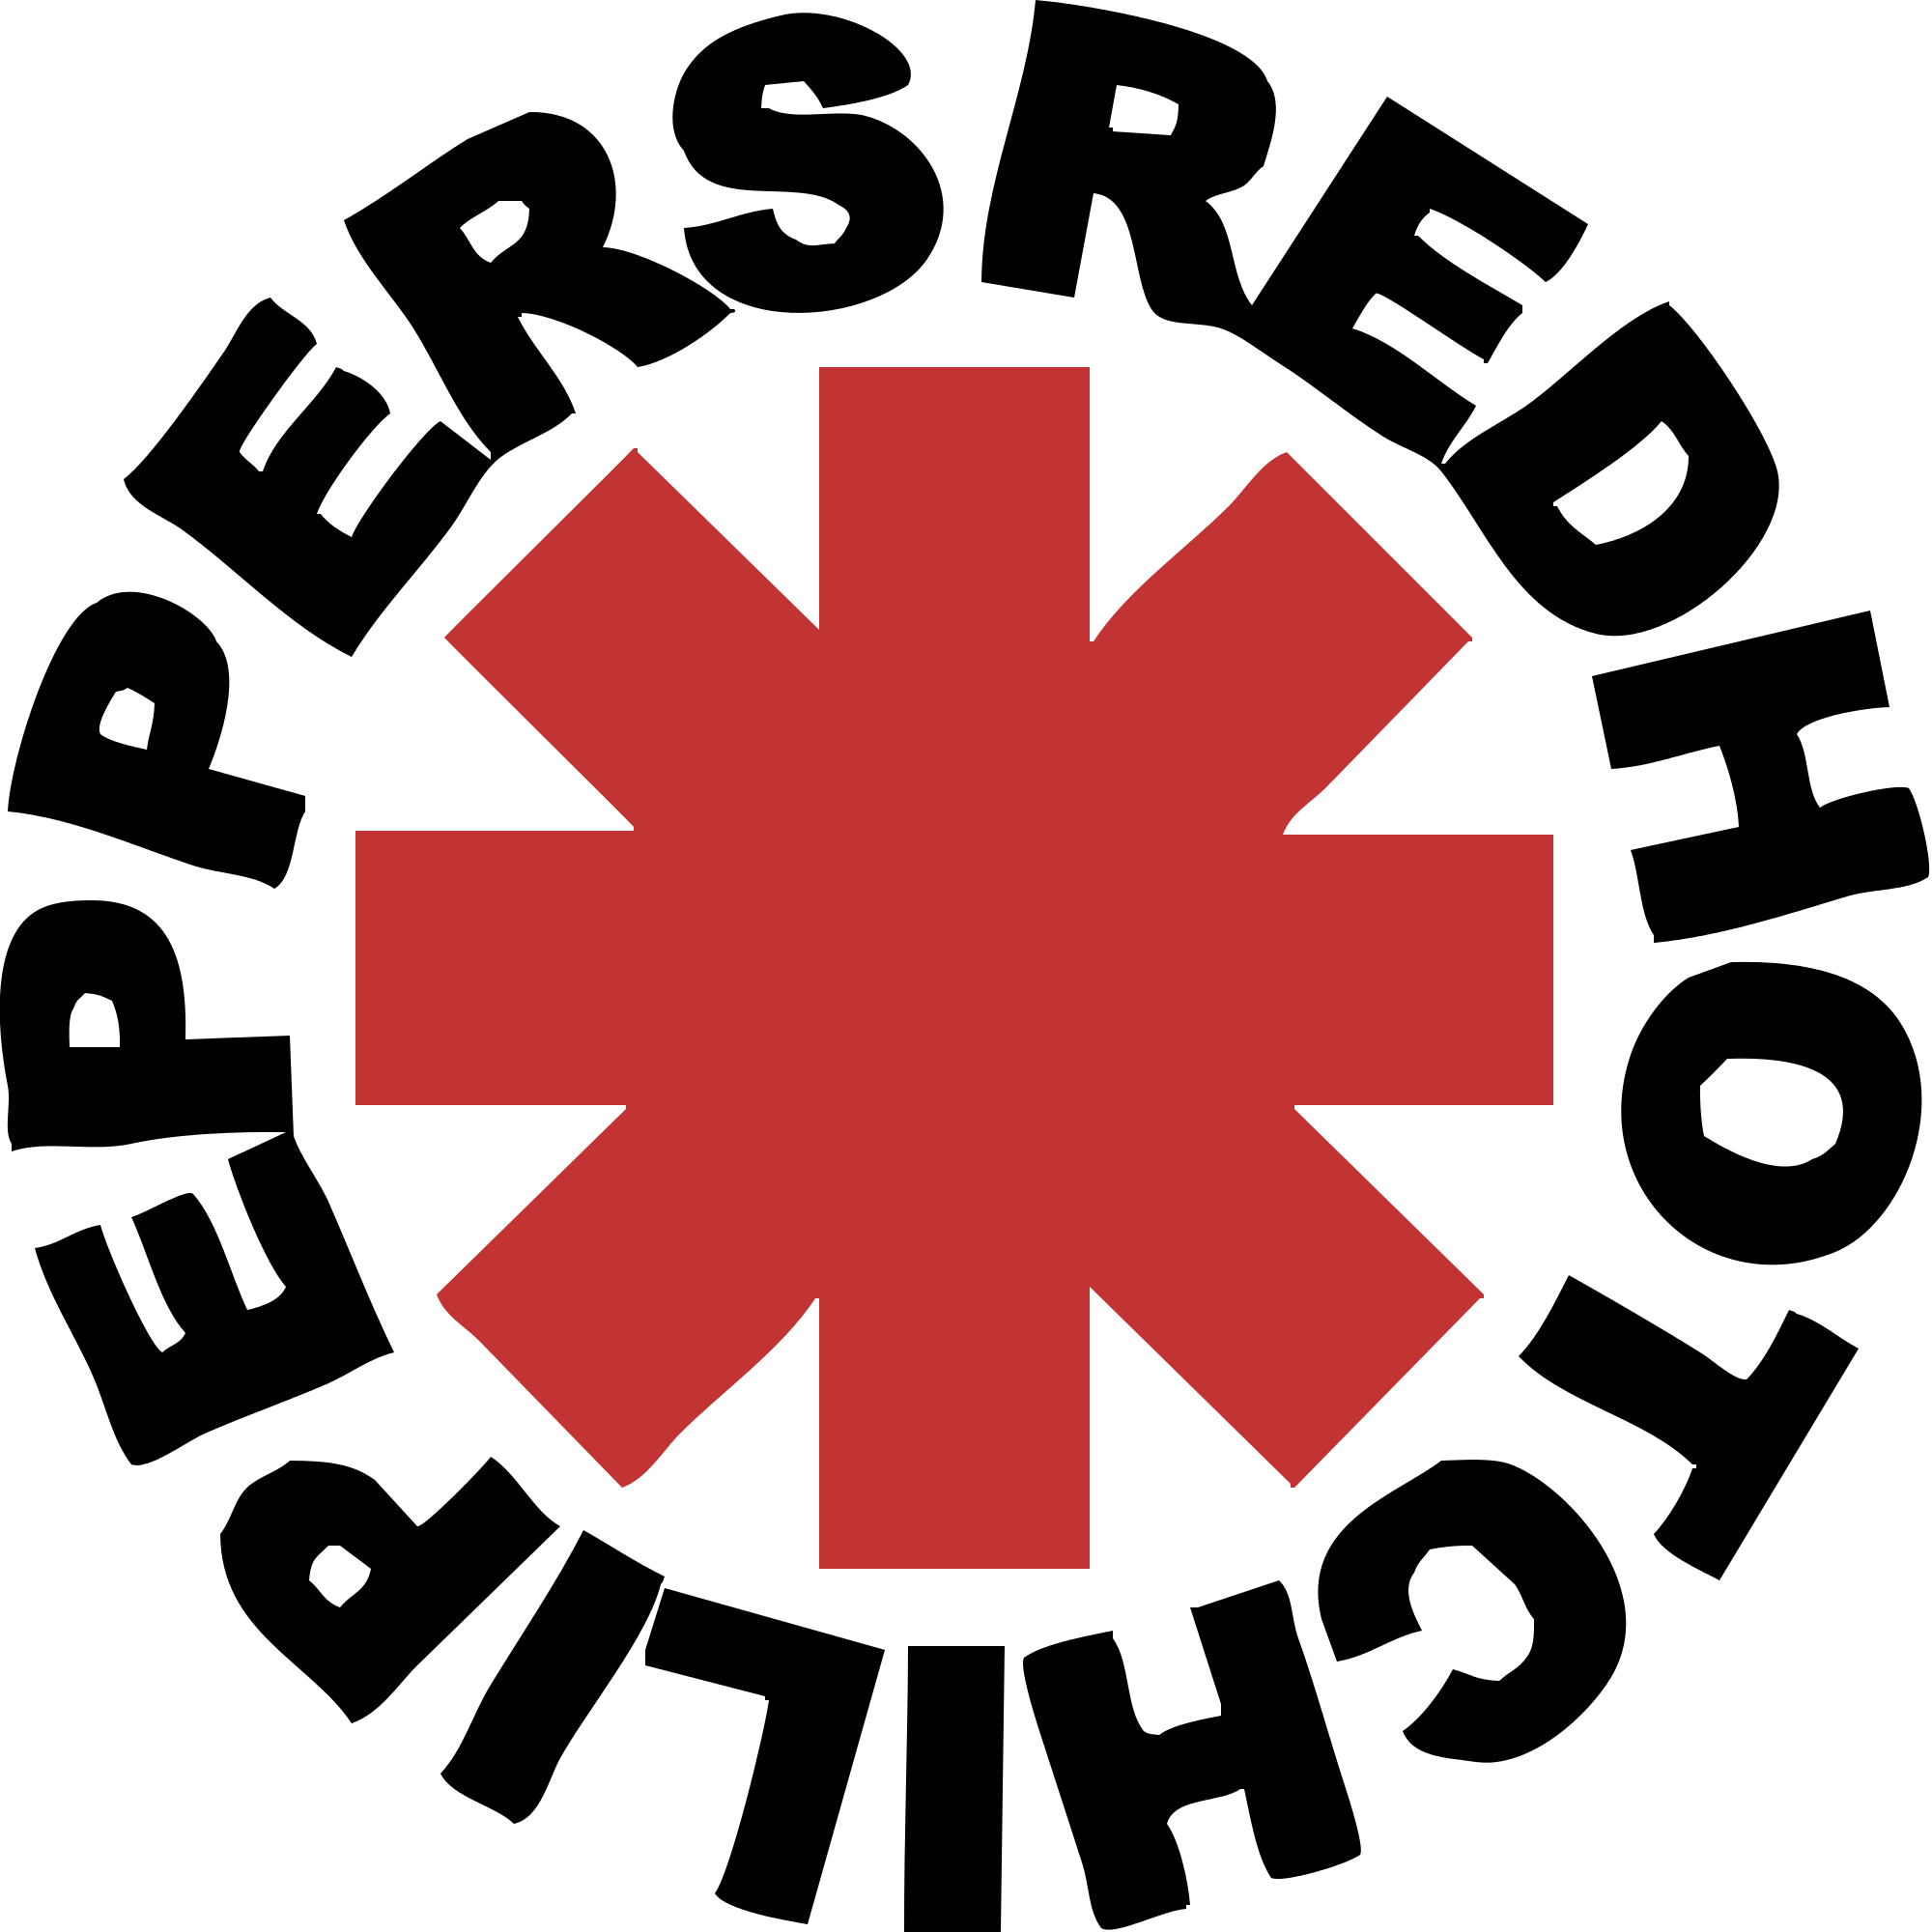 Red Hot Chili Peppers Wallpapers Music Hq Red Hot Chili Peppers